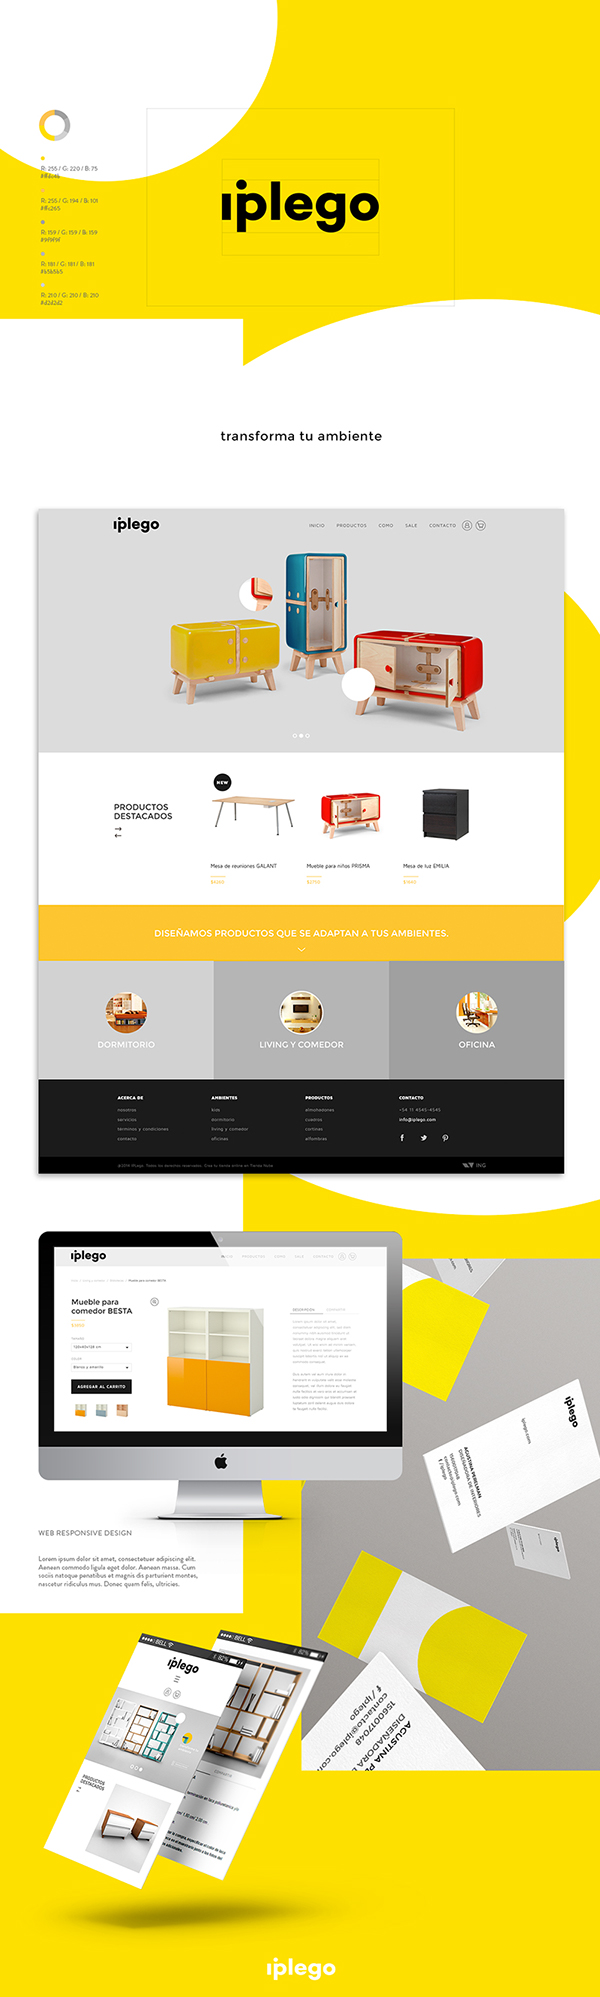 Ecommerce muebles furniture ambiente environment entorno